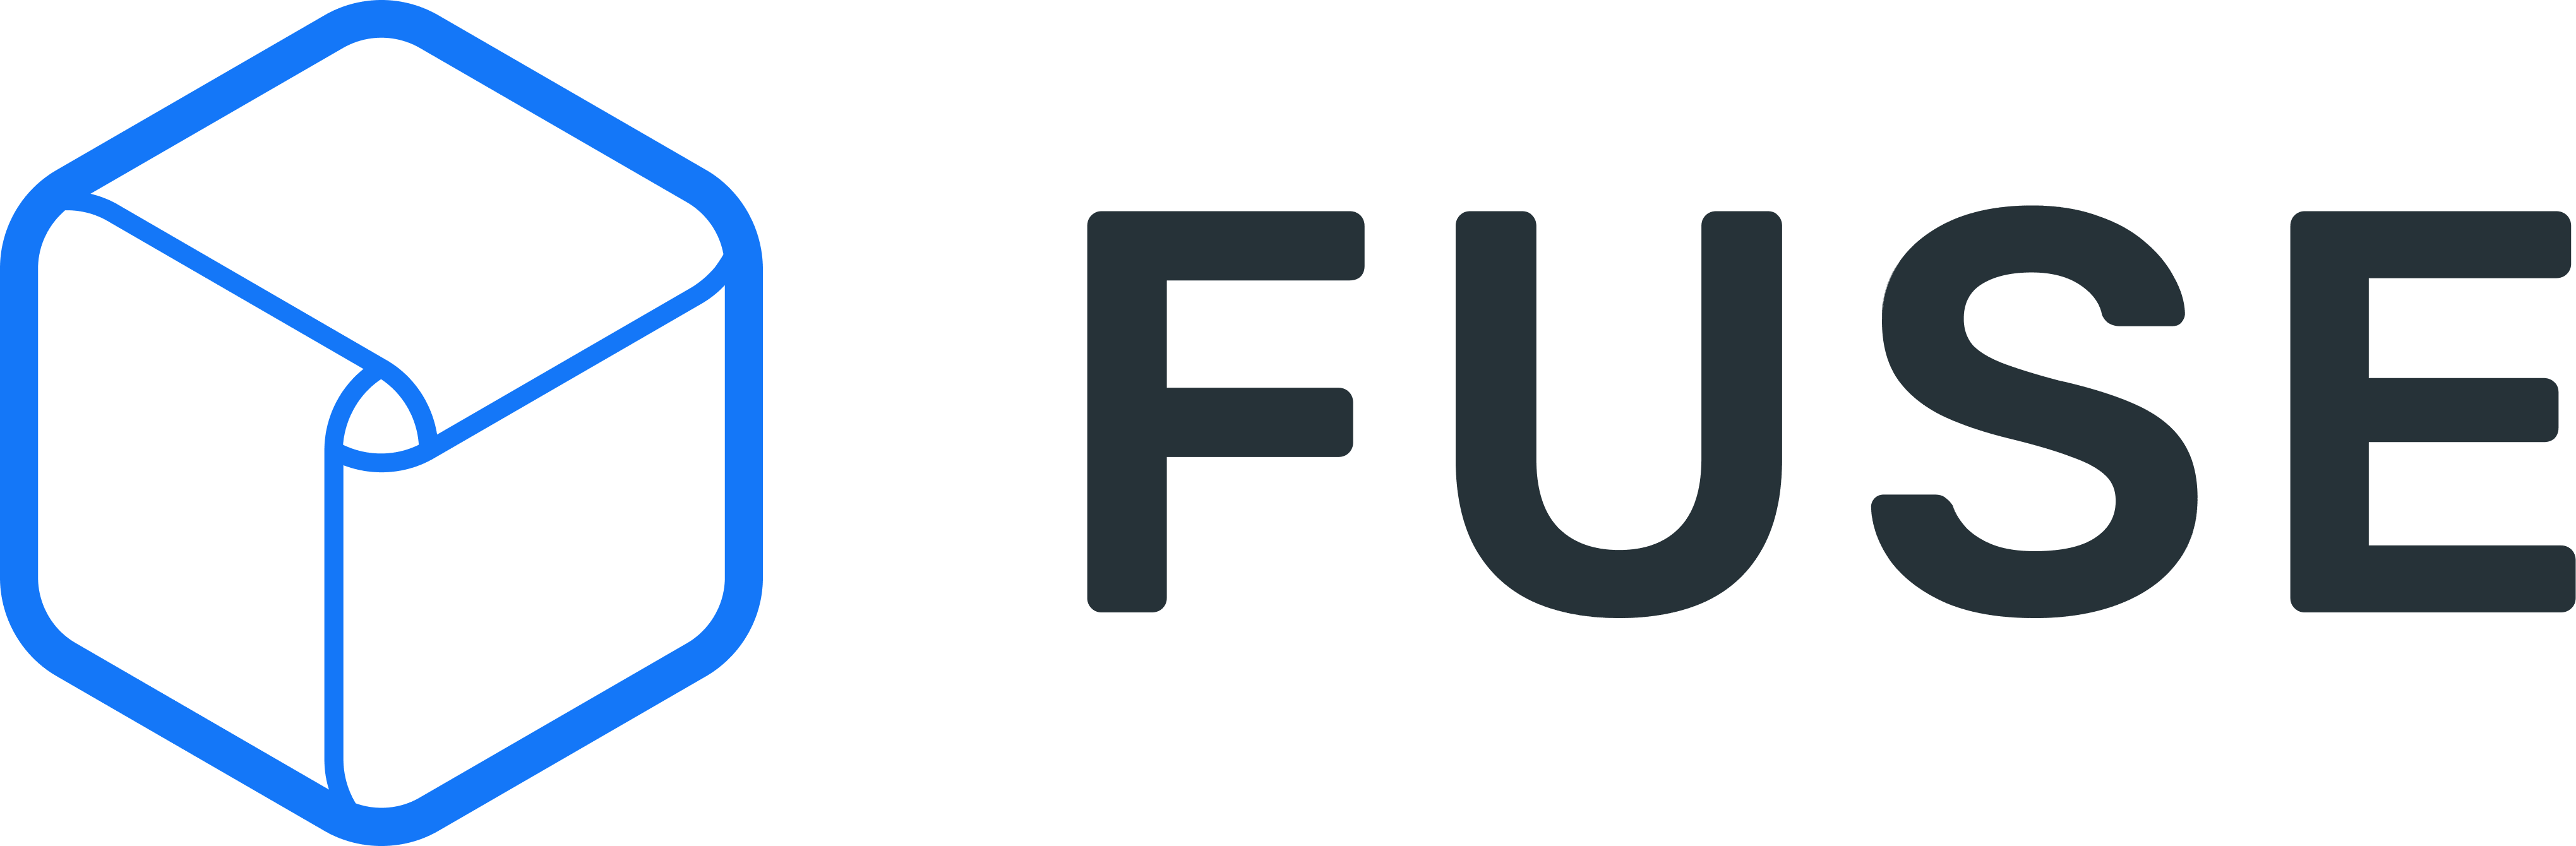 Fuze logo with dark text color